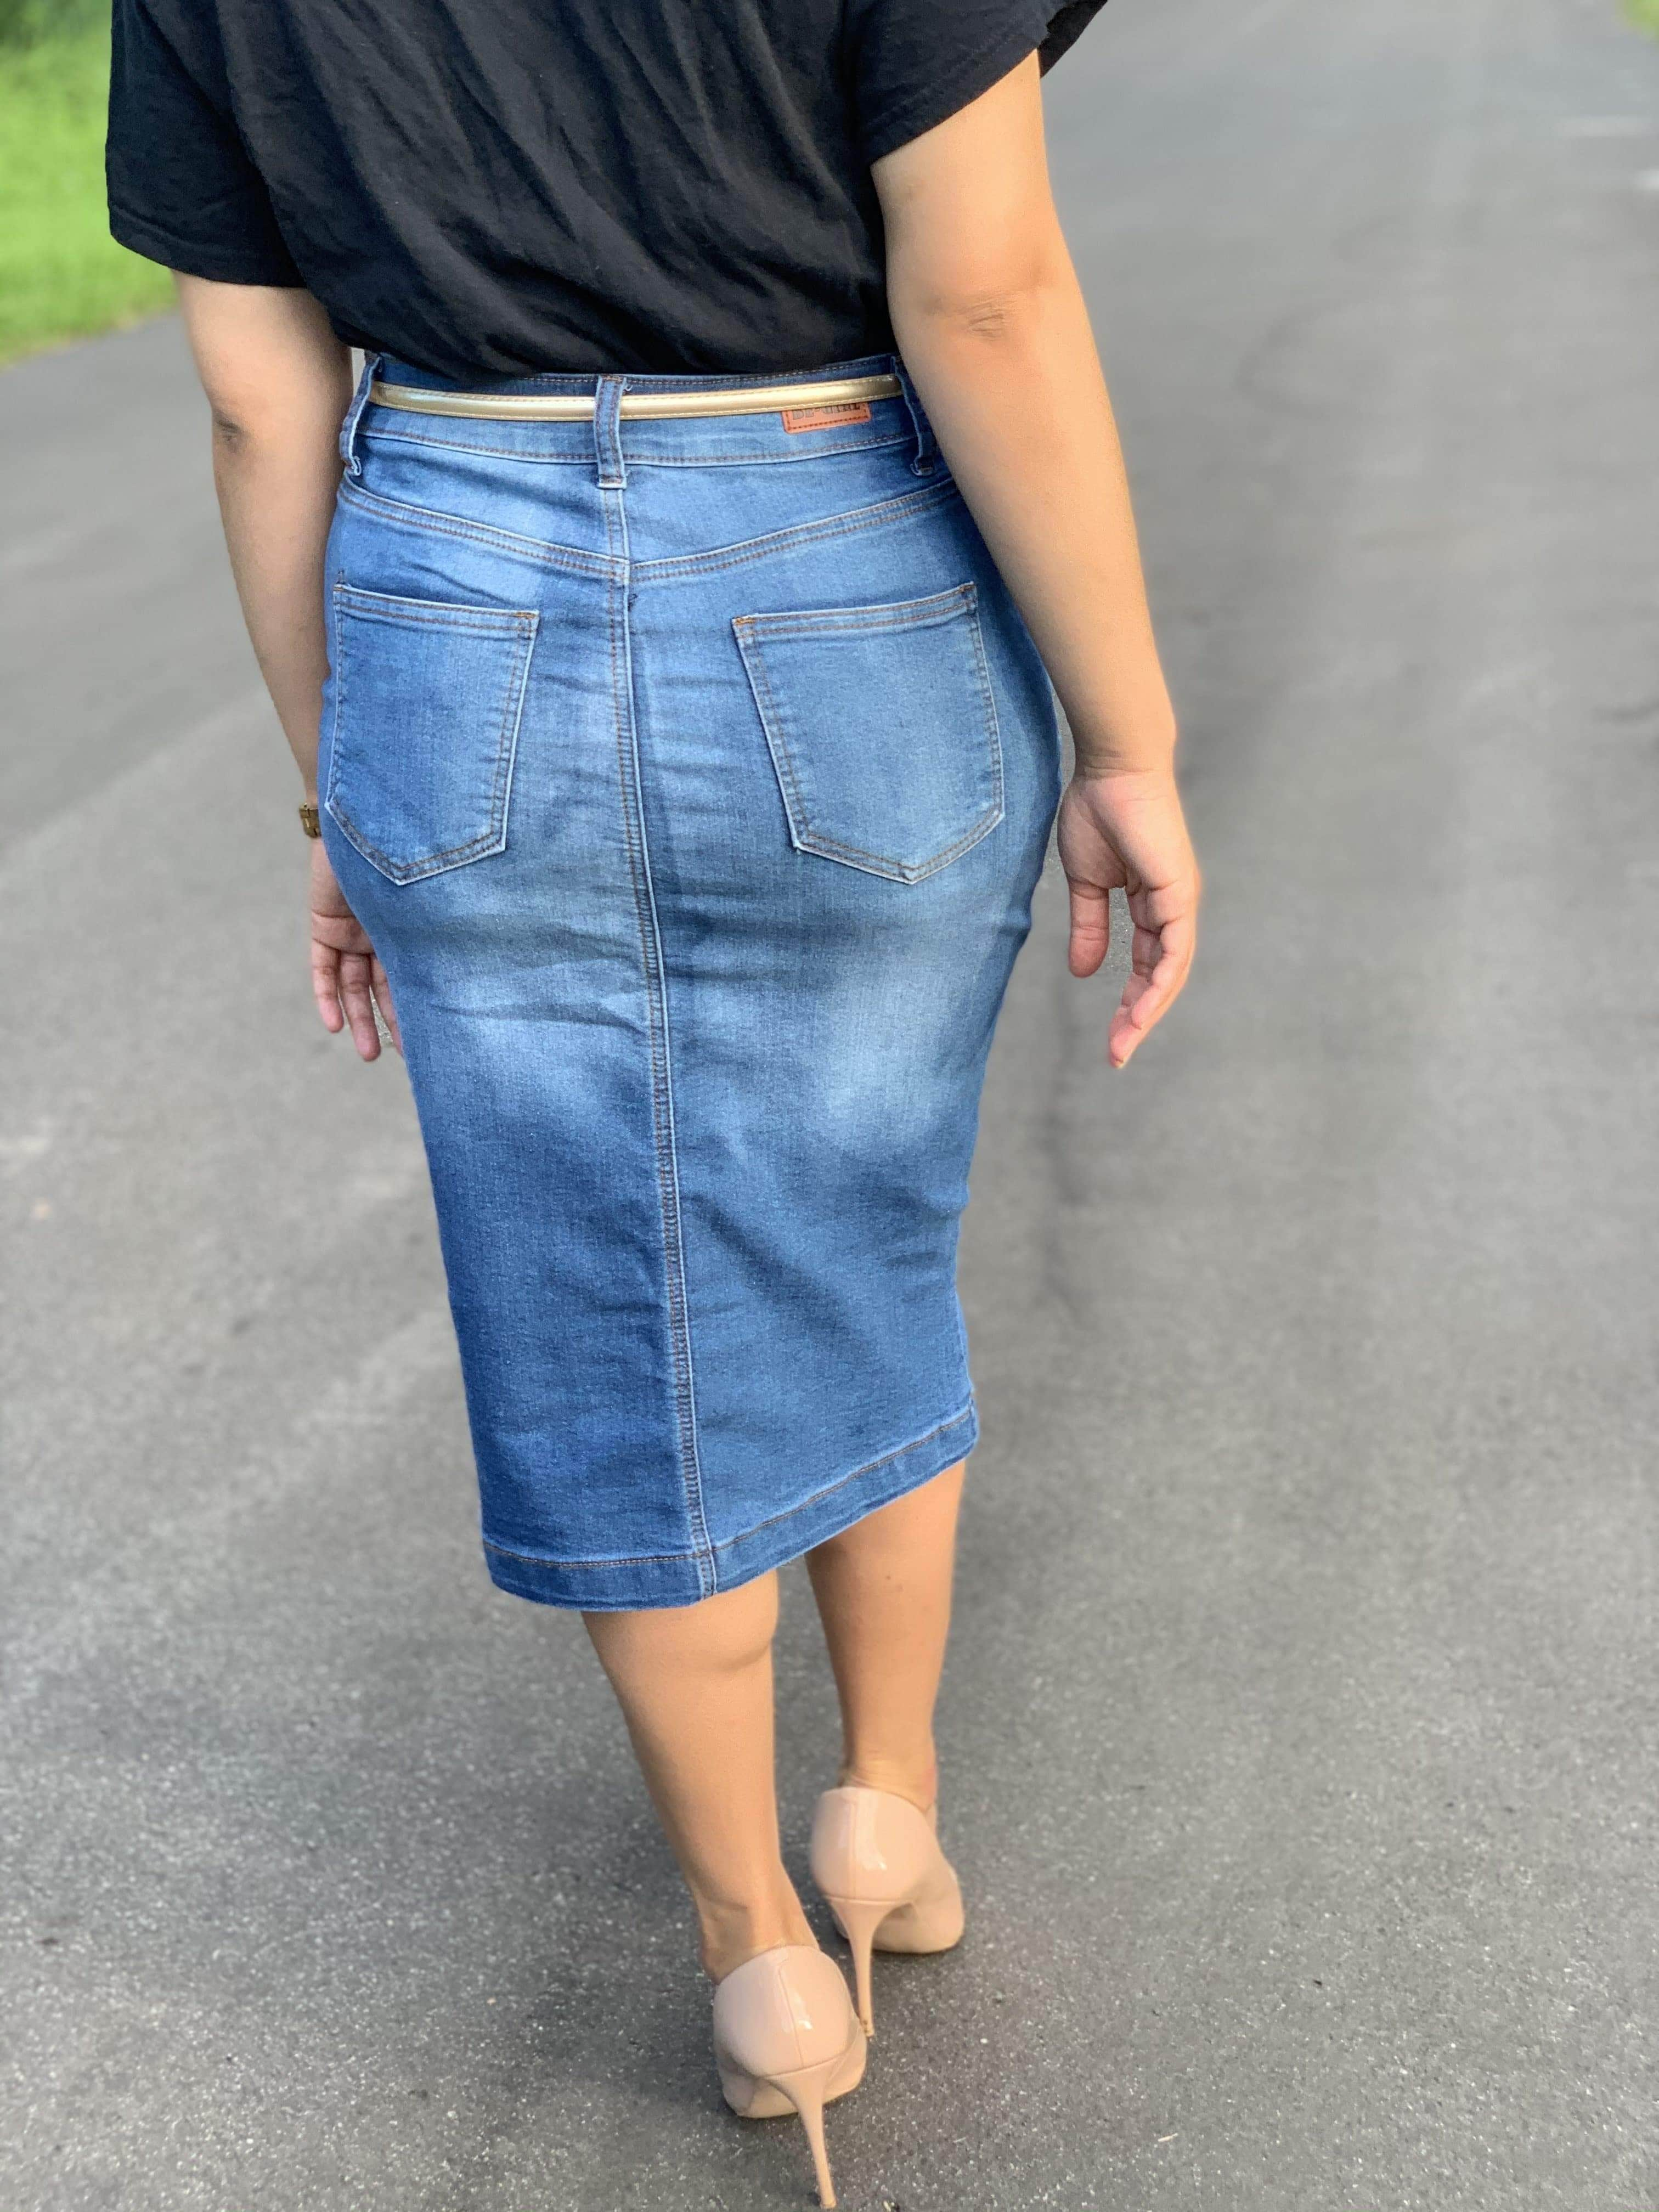 The Mika Denim Skirt - Her Worth Boutique